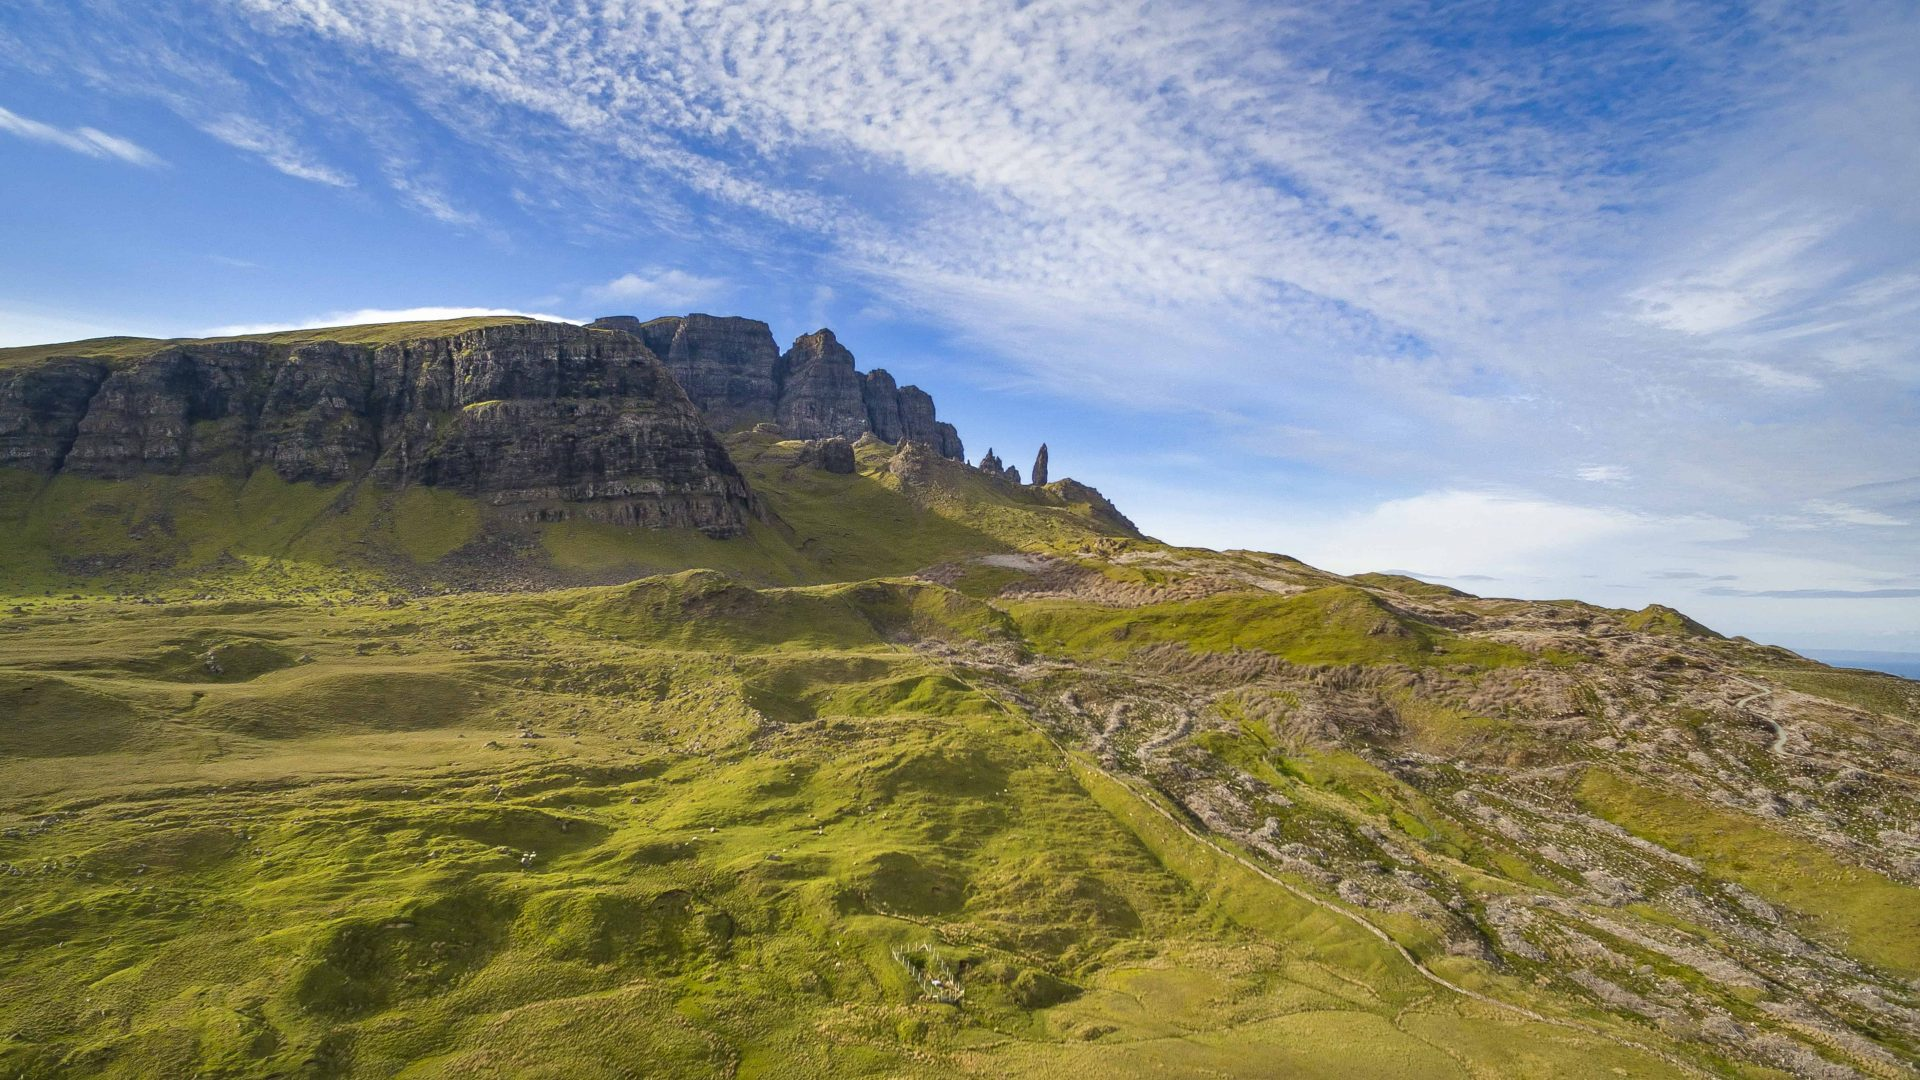 A scenic landscape shot of the iconic Old Man of Storr, Skye.